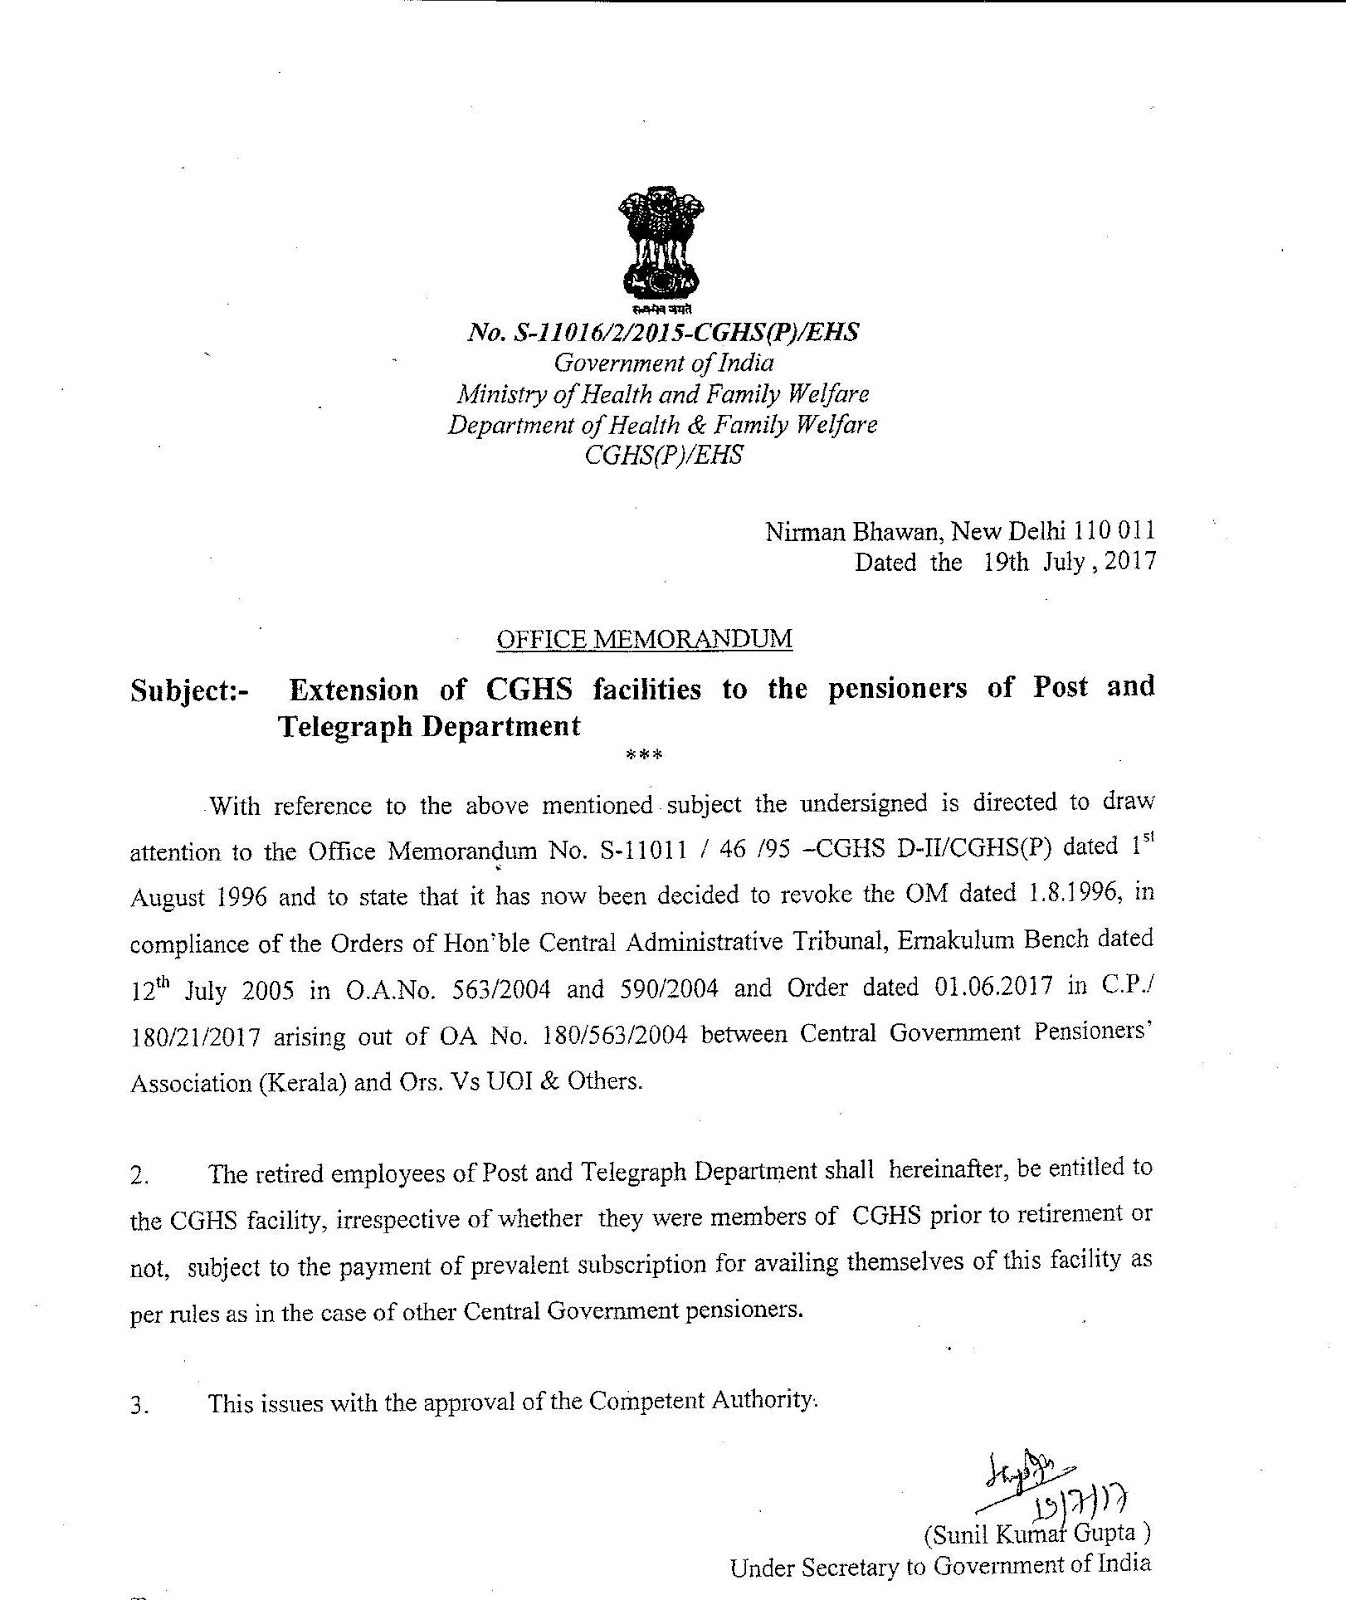 Extension of CGHS Facilities to Pensioners of Postal and Telegraph on